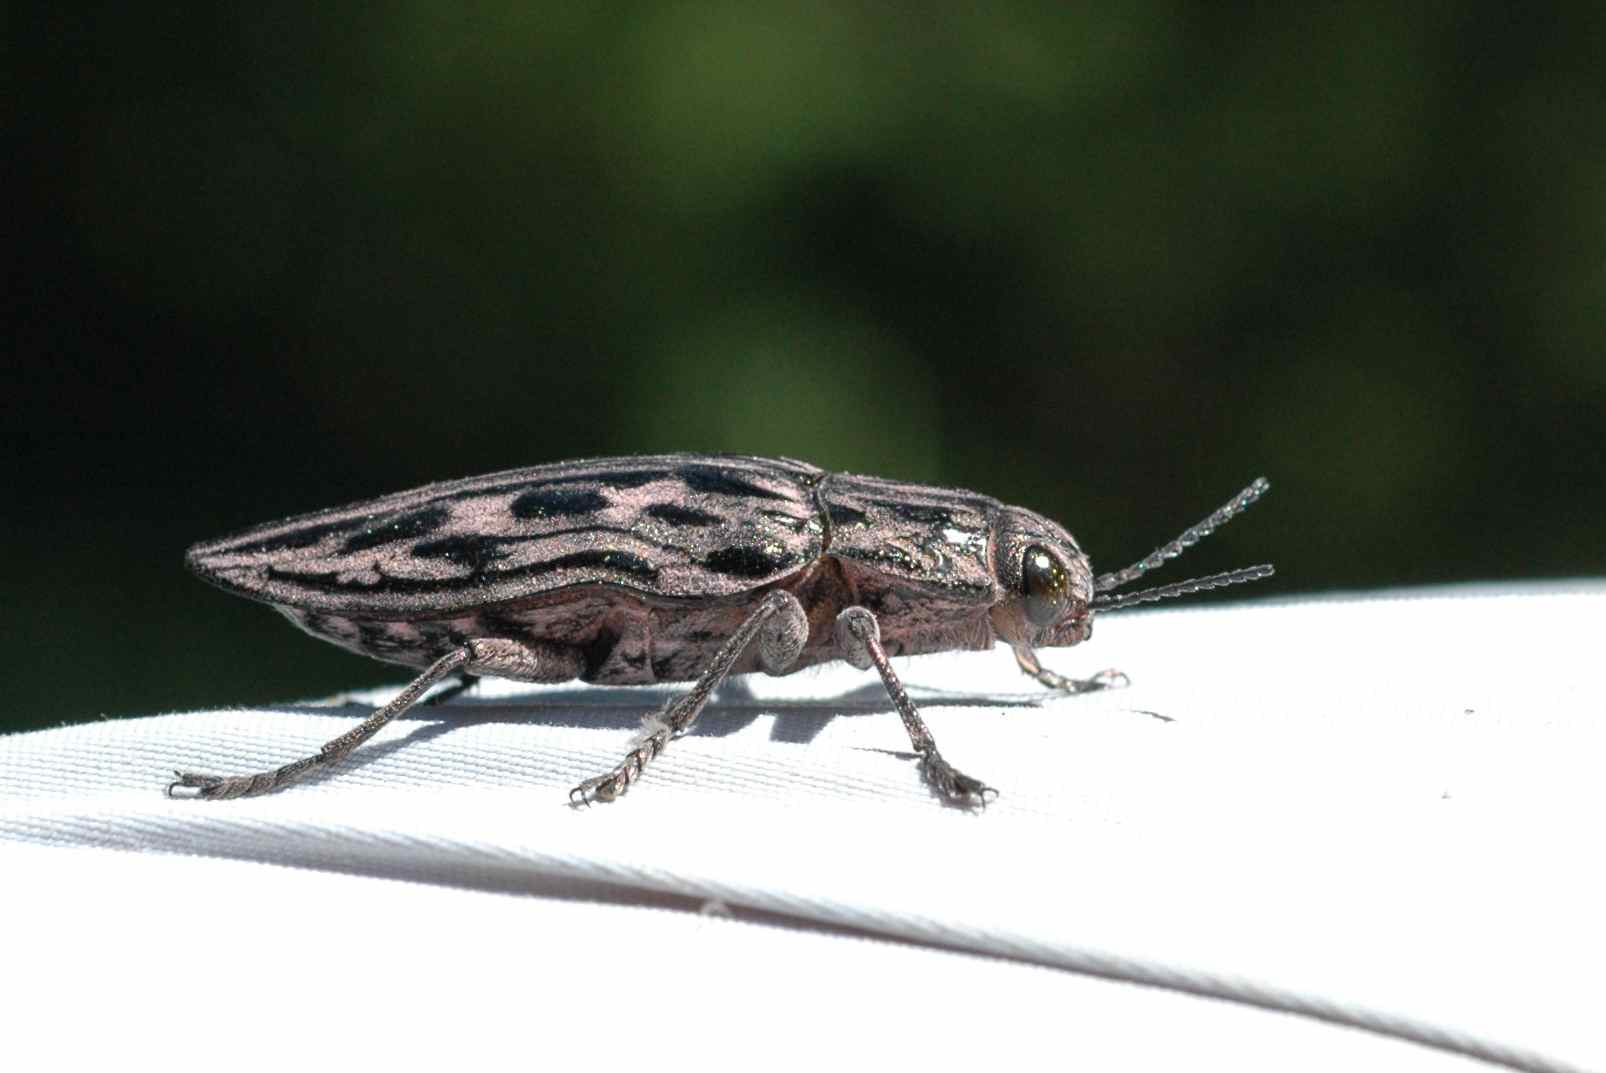 The coolest insect I've ever seen in person. It looked like a piece of enameled jewelry.